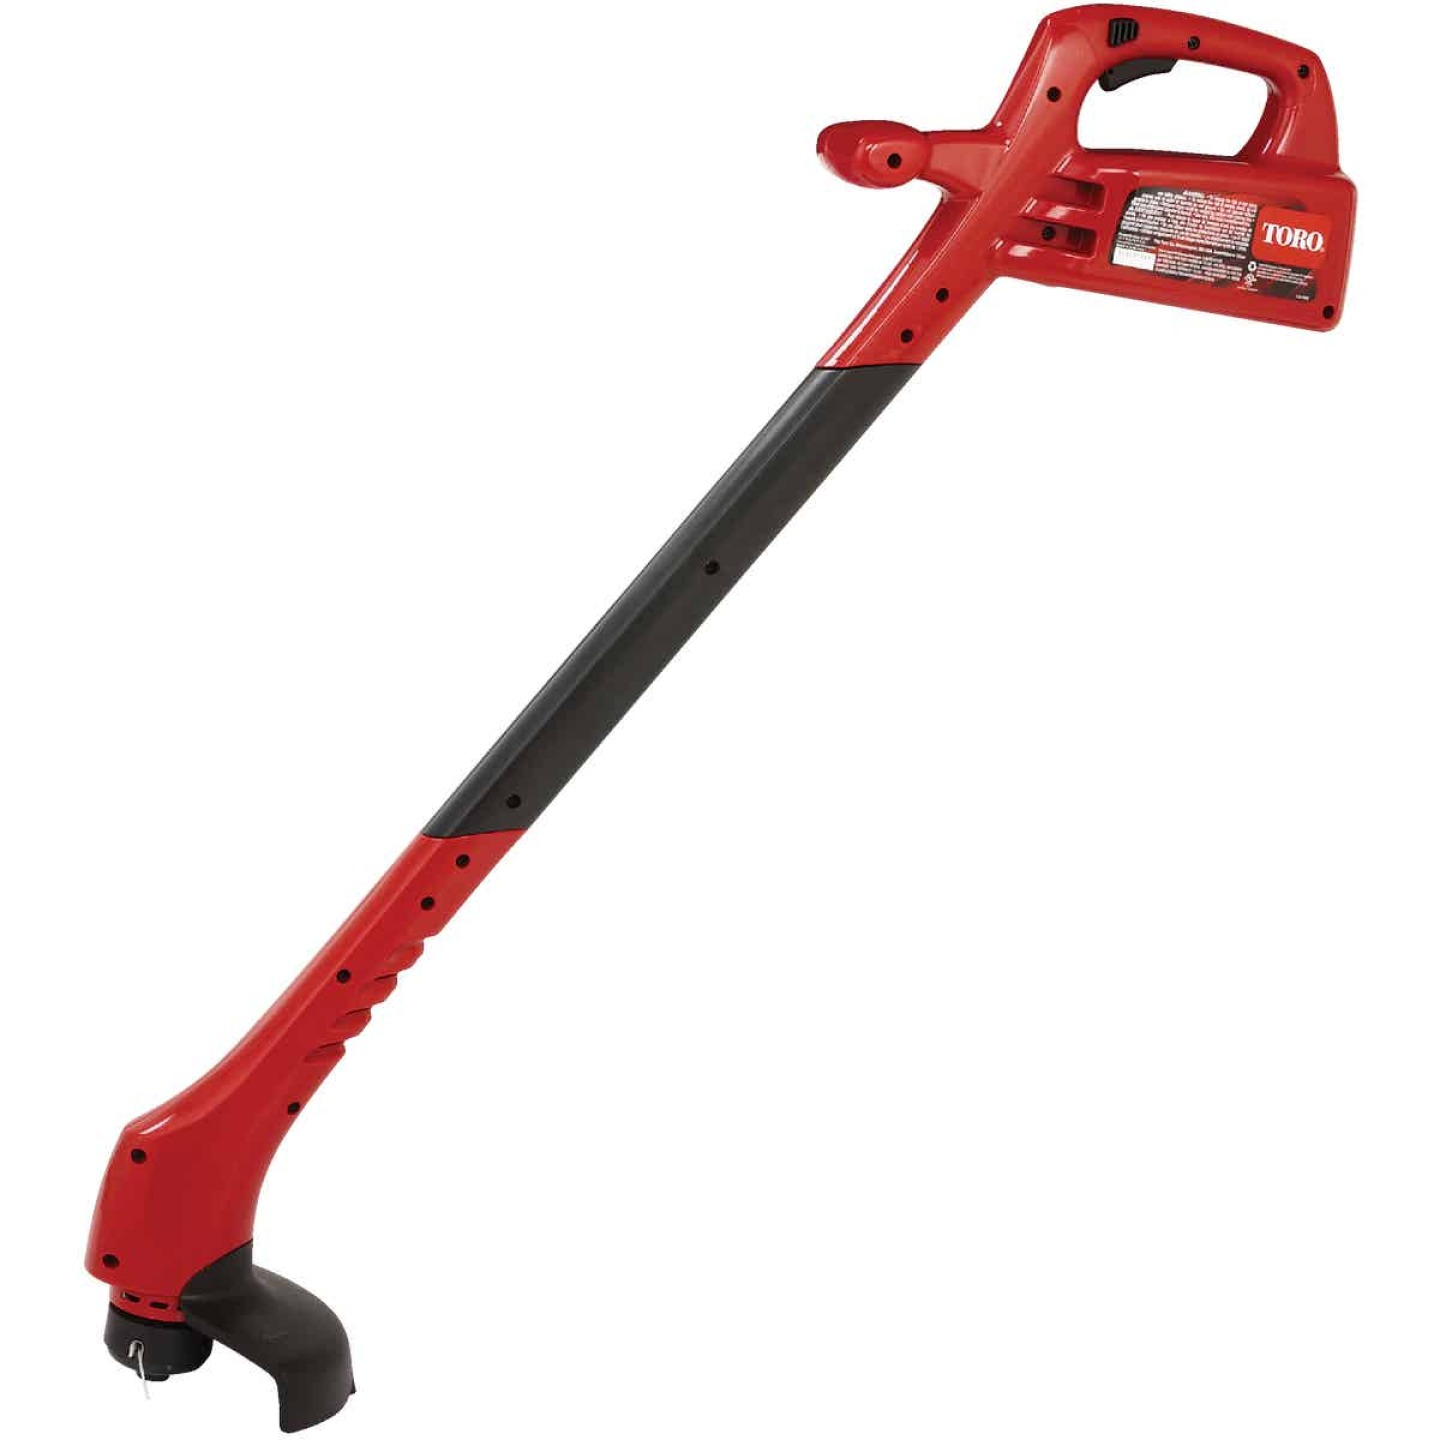 Toro 12V 8 In. Ni-Cad Straight Cordless String Trimmer Image 10